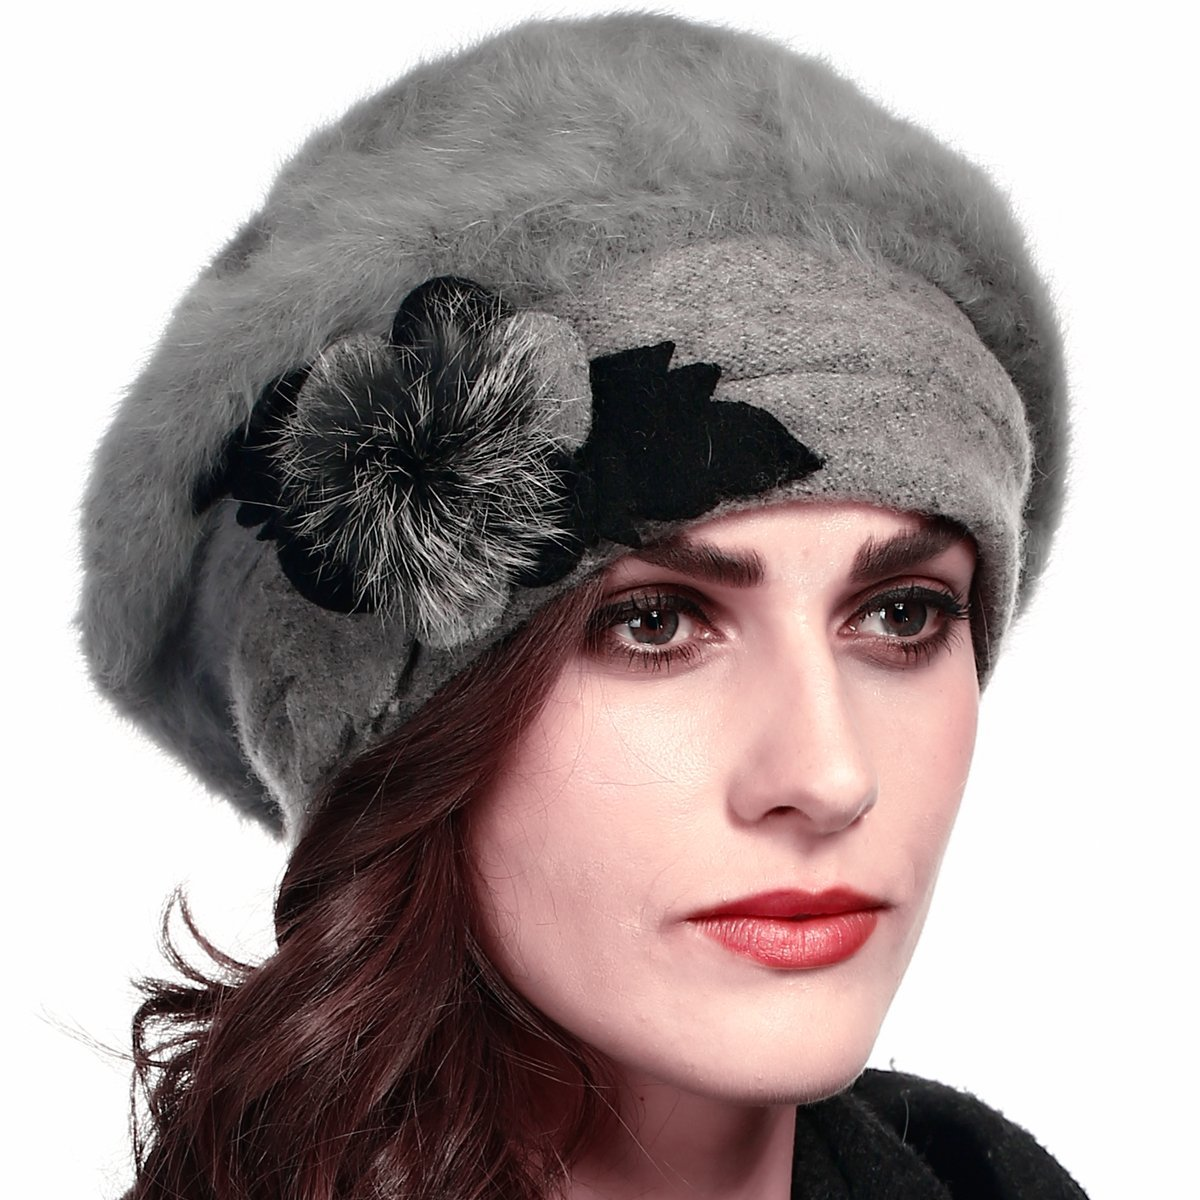 Retro Women Floral Trimmed Wool Blend Cloche Winter Hat (Angola-gray)